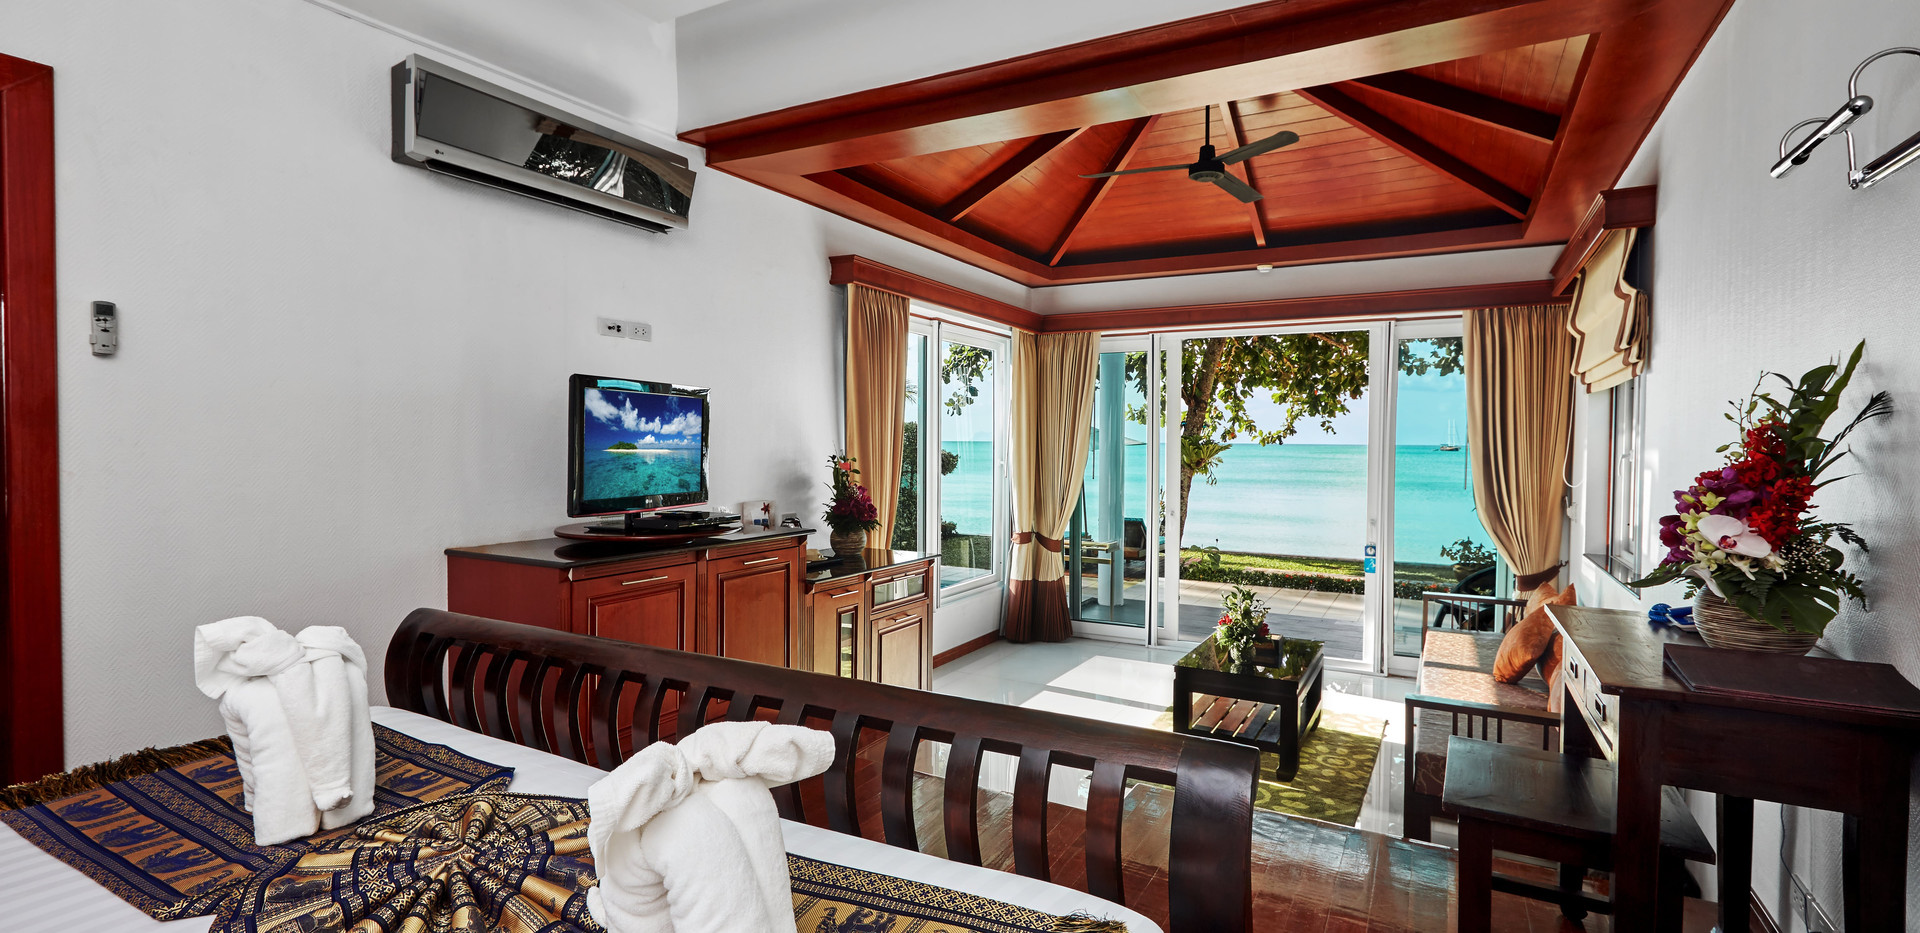 Beachfront Villa - inside 2.jpg